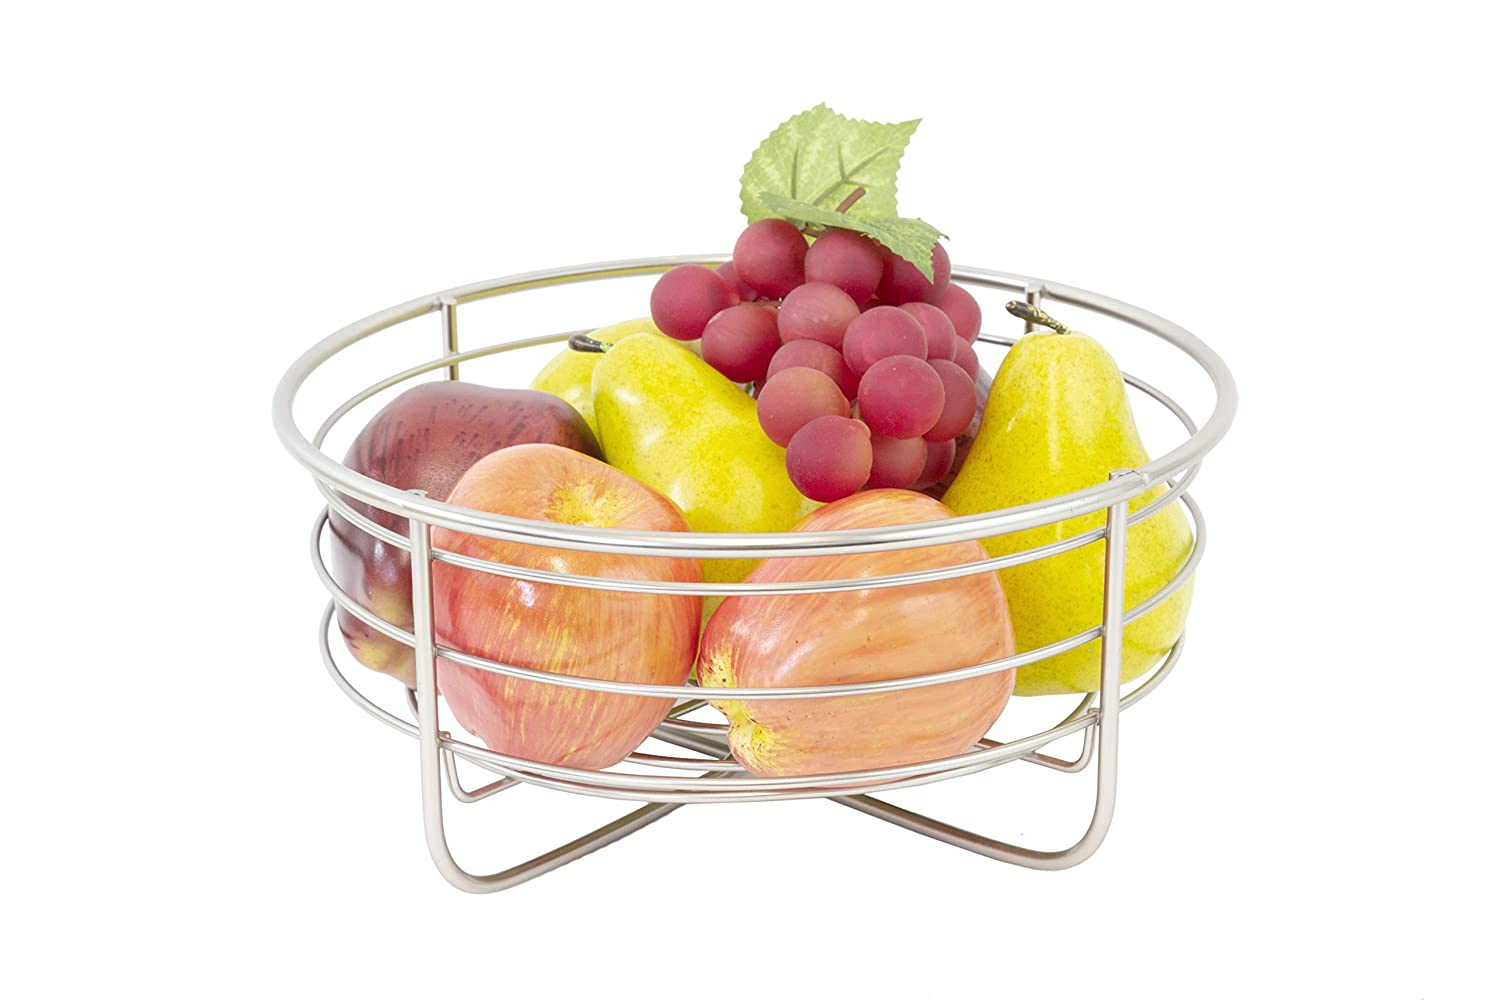 2 TIER, Inspired Living by Mesa Inspired Living Bowl Kitchen BASKETSTAND Powder Coated Black Polyhedron Collection FRUIT BASKET